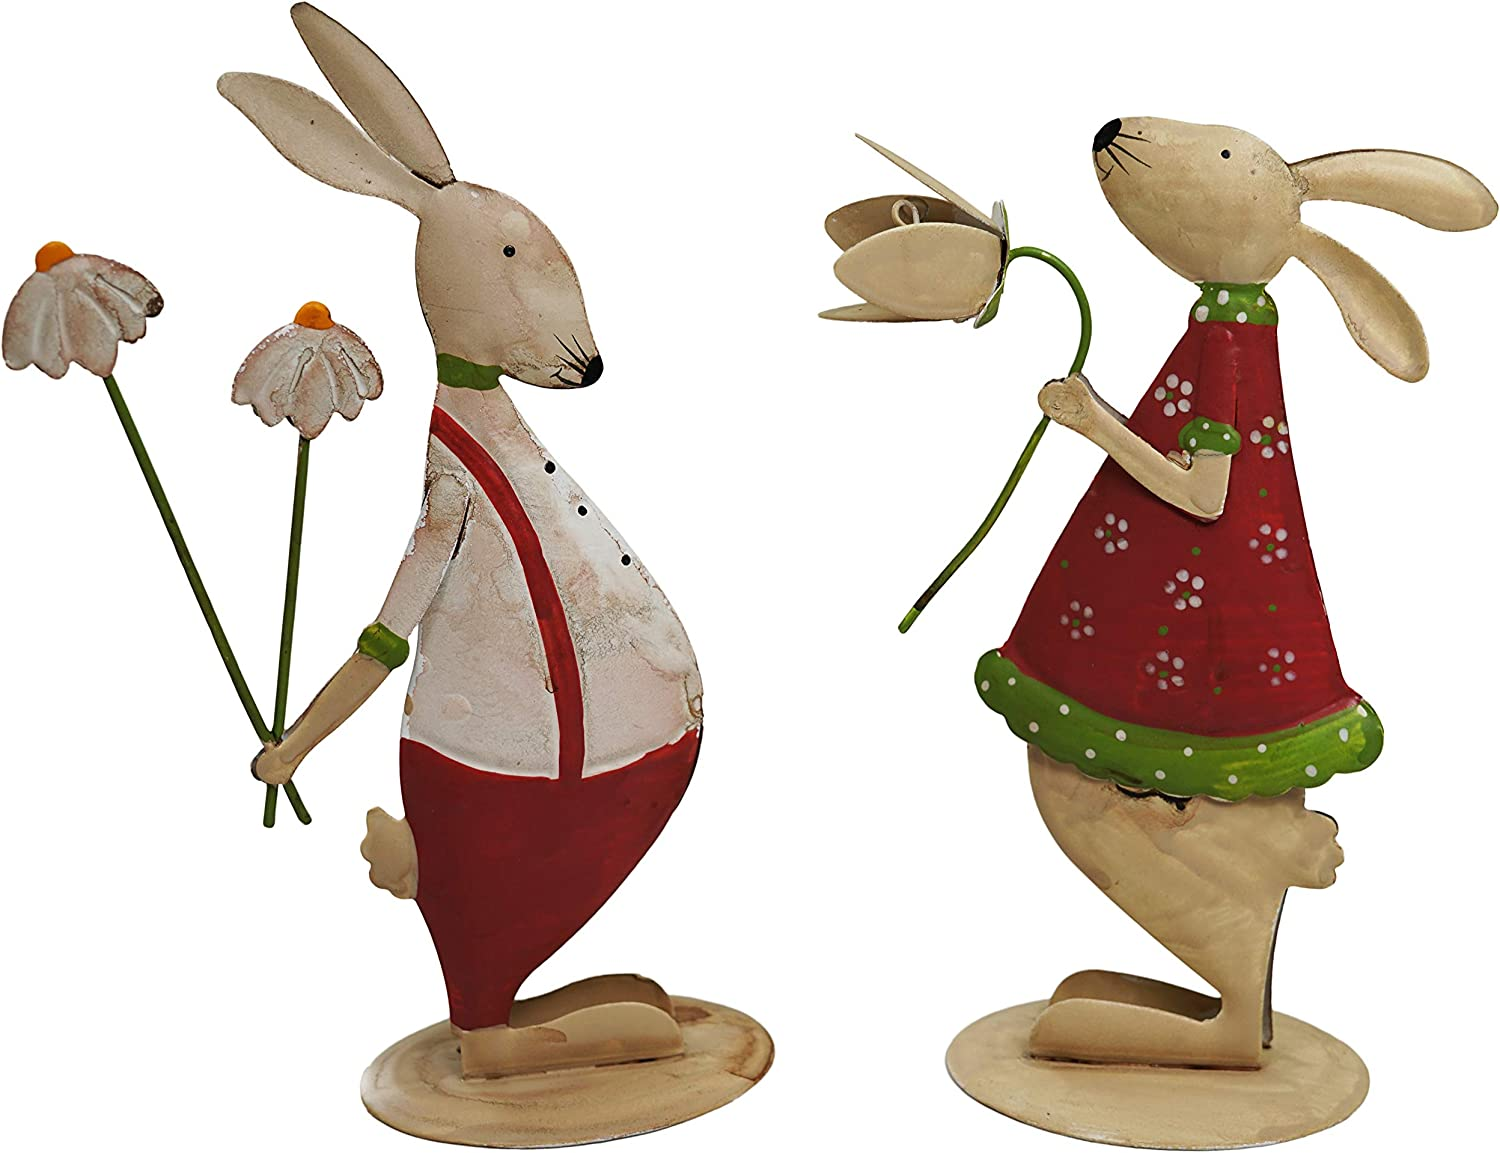 khevga Easter Bunny Decoration Indoor for Home and Table - Decorative Metal Bunny, Set of 2